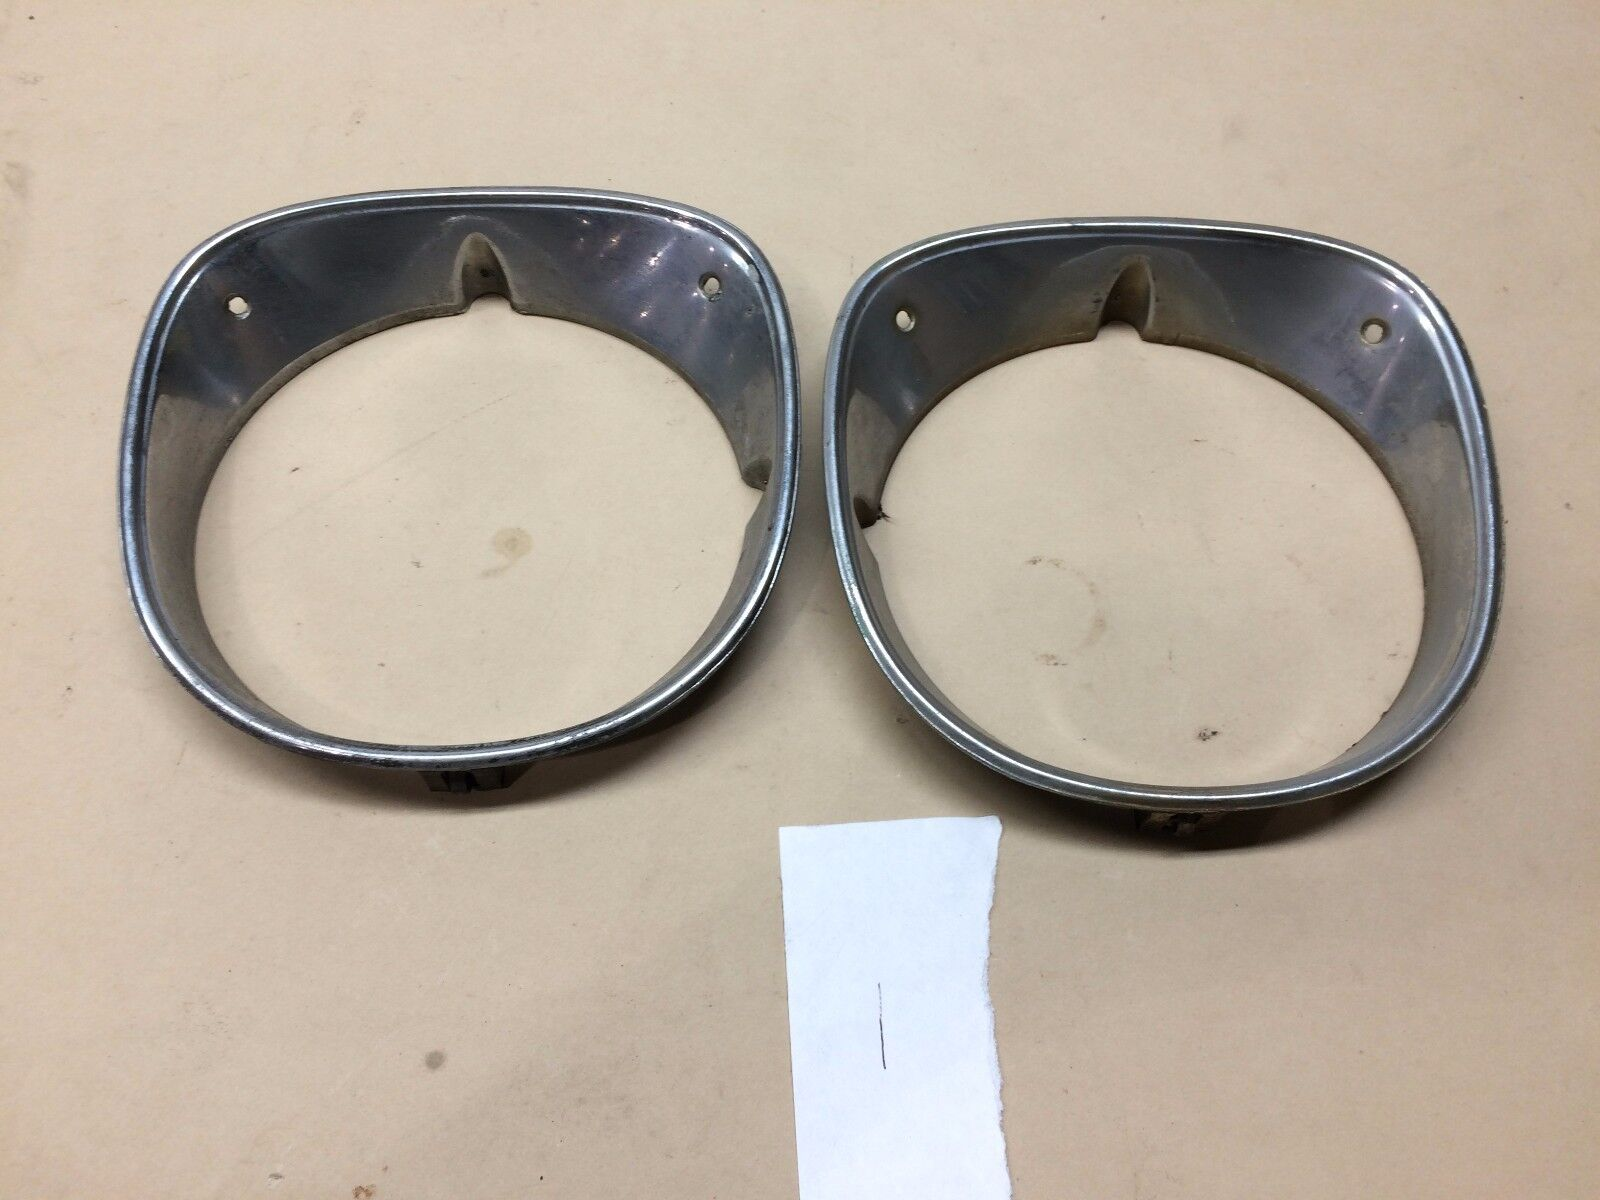 1970 Chevelle 70 Malibu El Camino Headlight Headlamp Bezel Trim PAIR #1